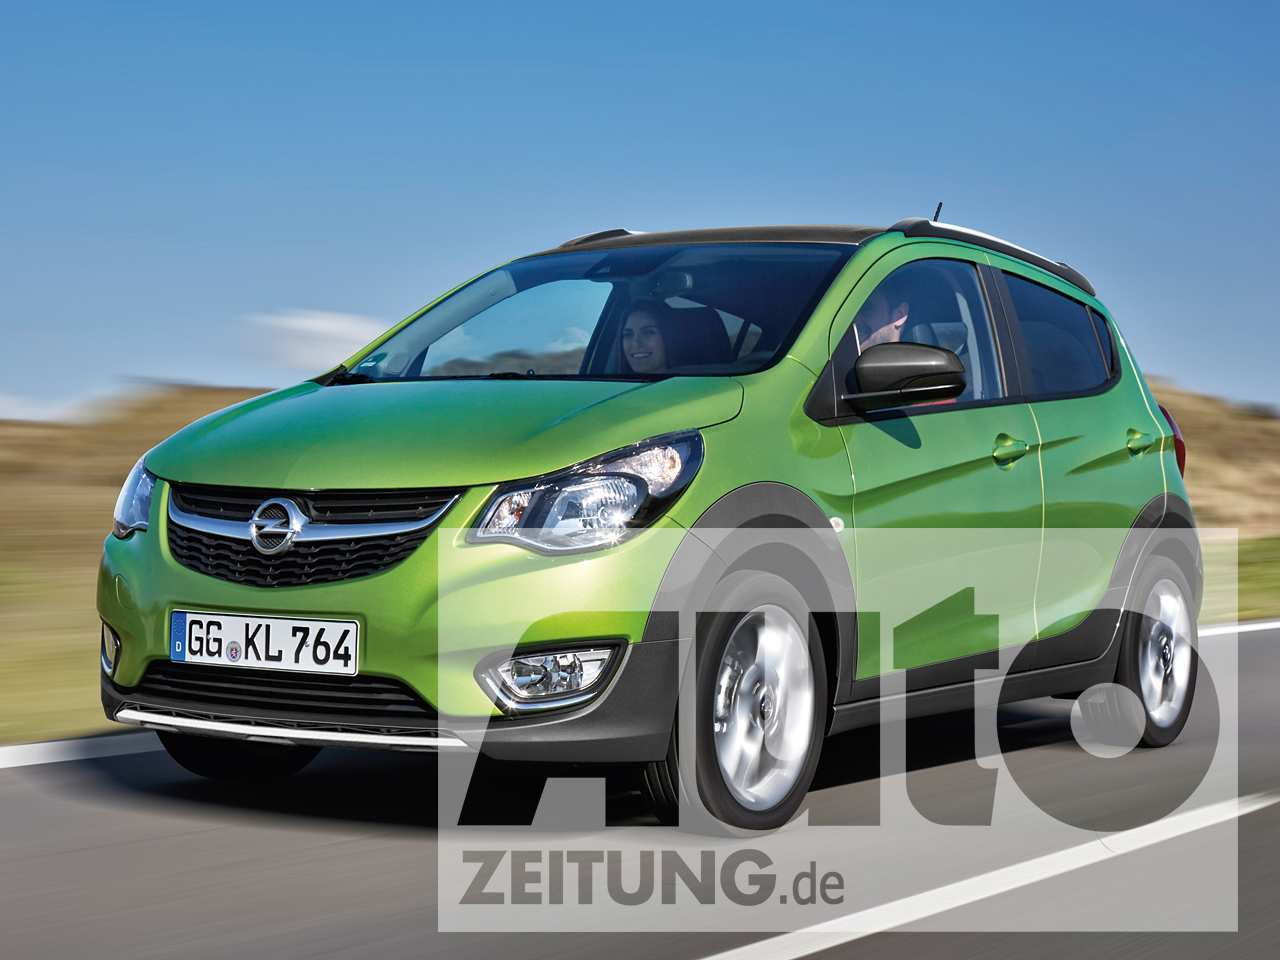 70 The Nouvelle Opel Karl 2020 Price And Release Date